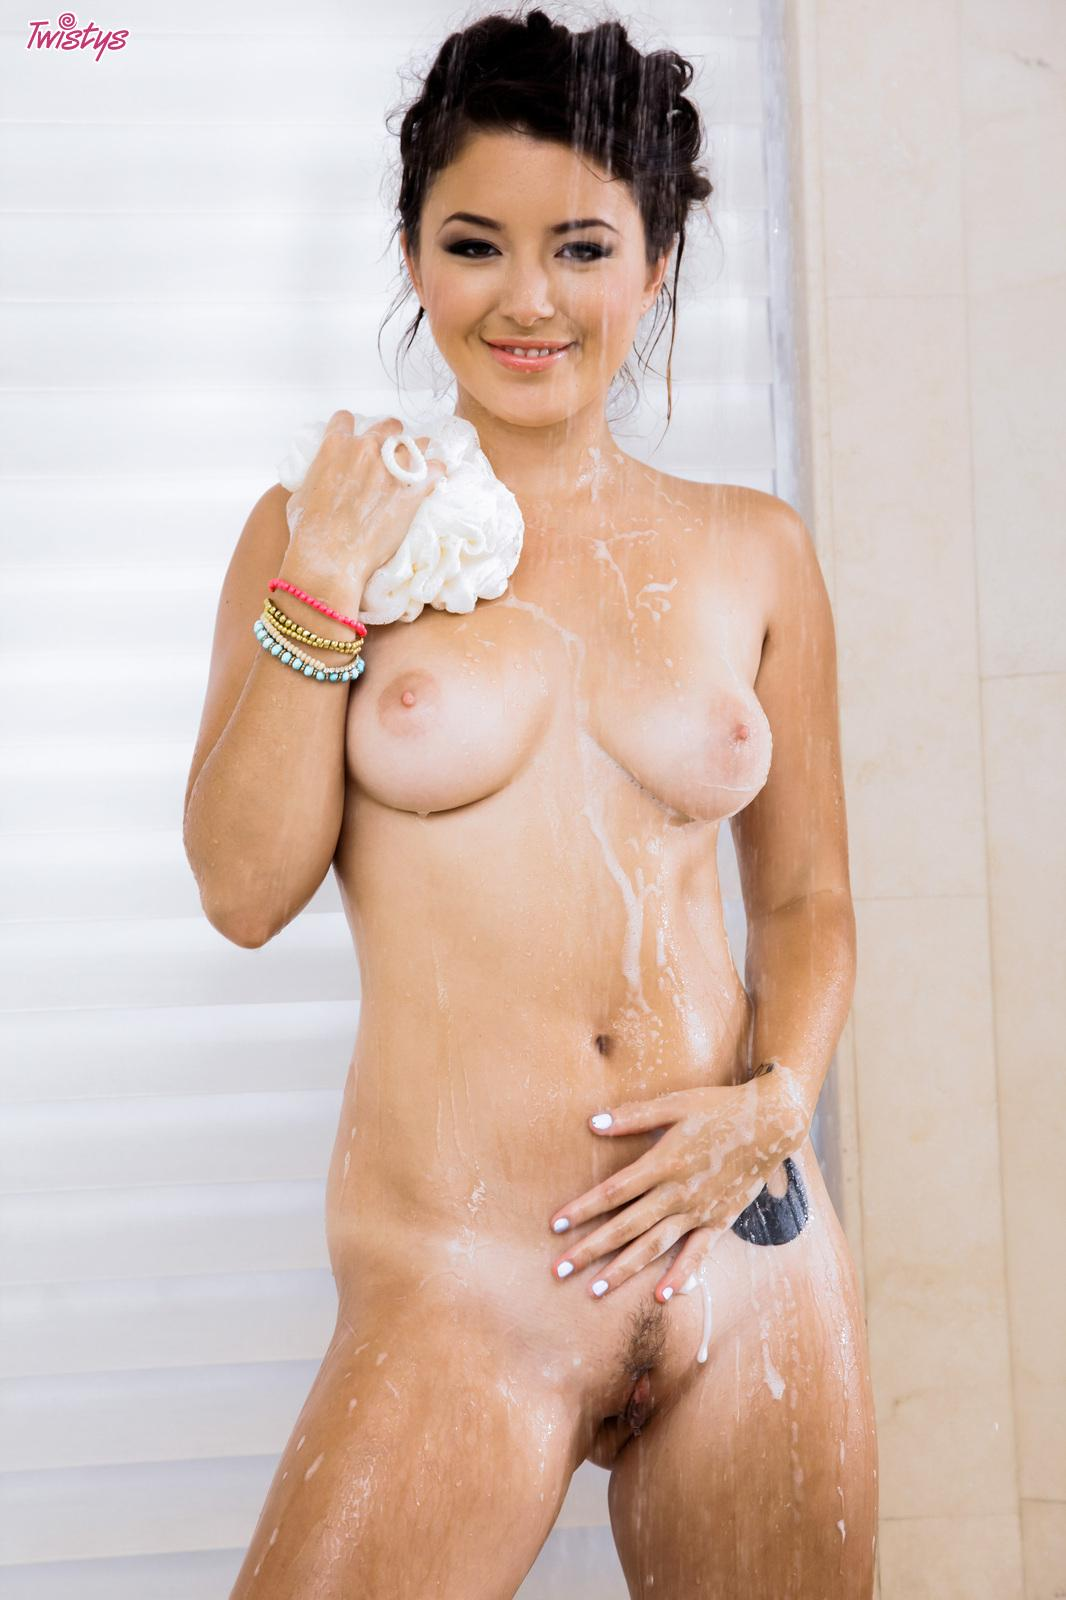 Korean babe Daisy Haze plays with her pussy in the shower ...